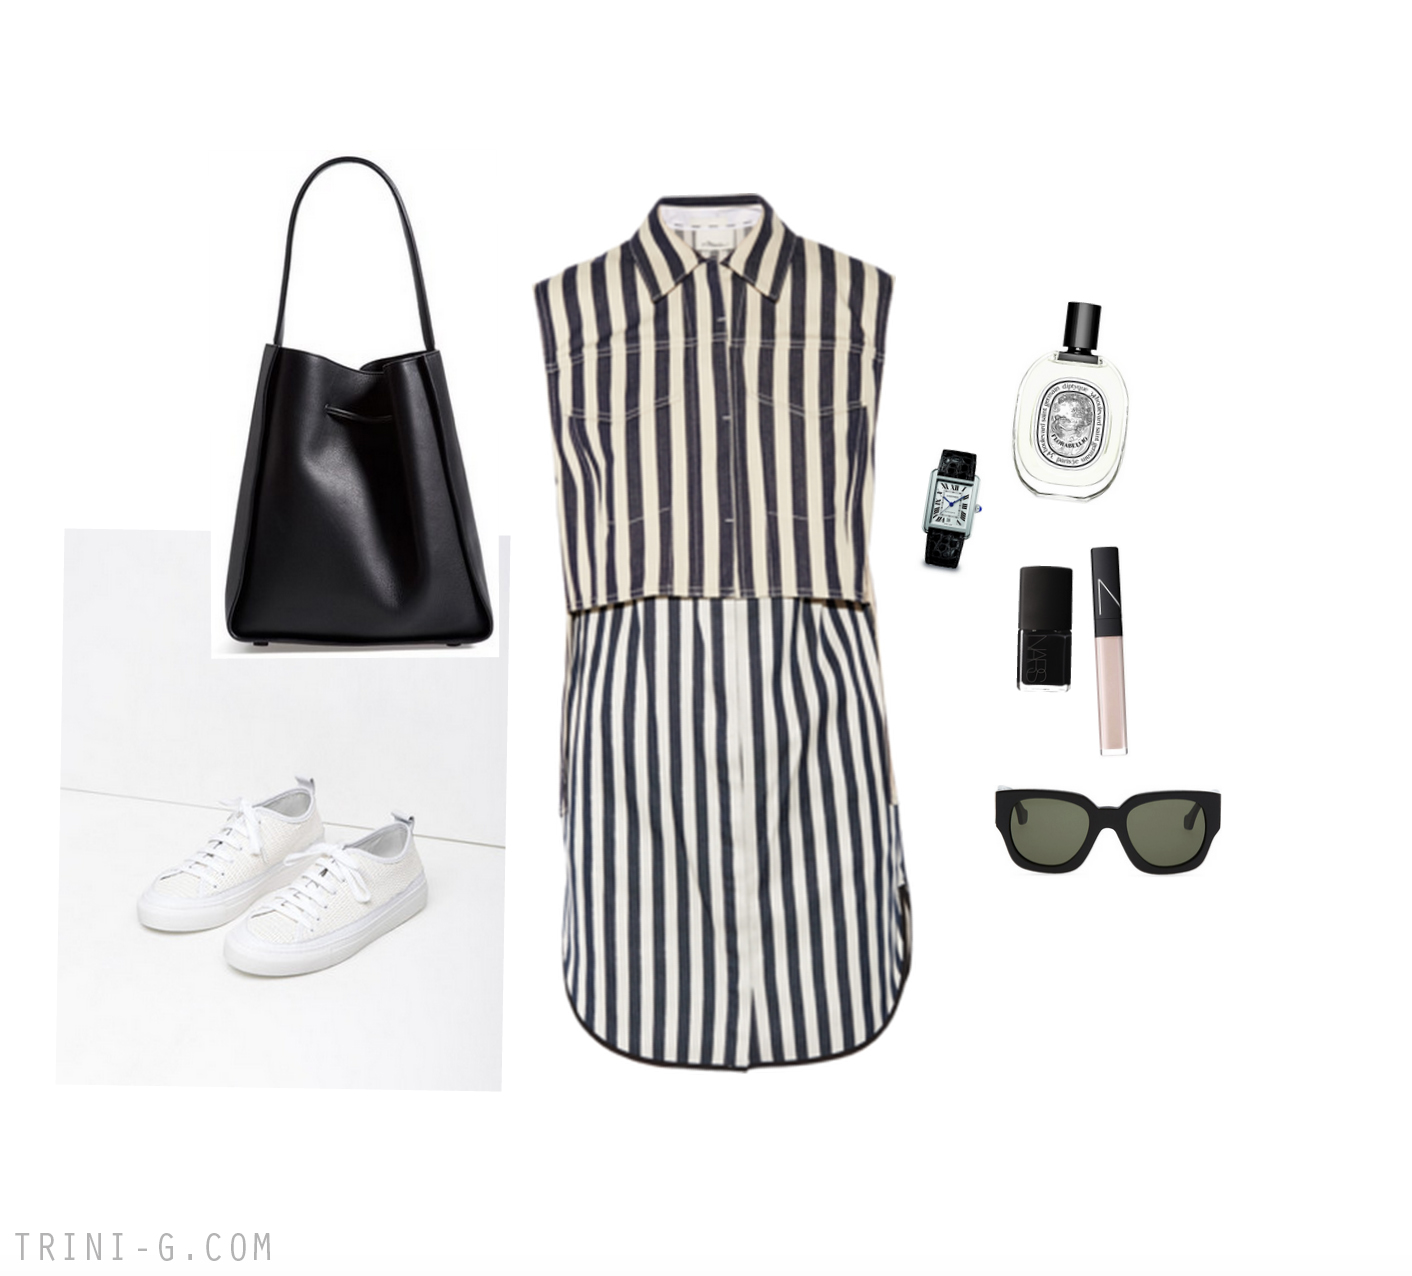 Trini blog | 3.1 Phillip Lim dress